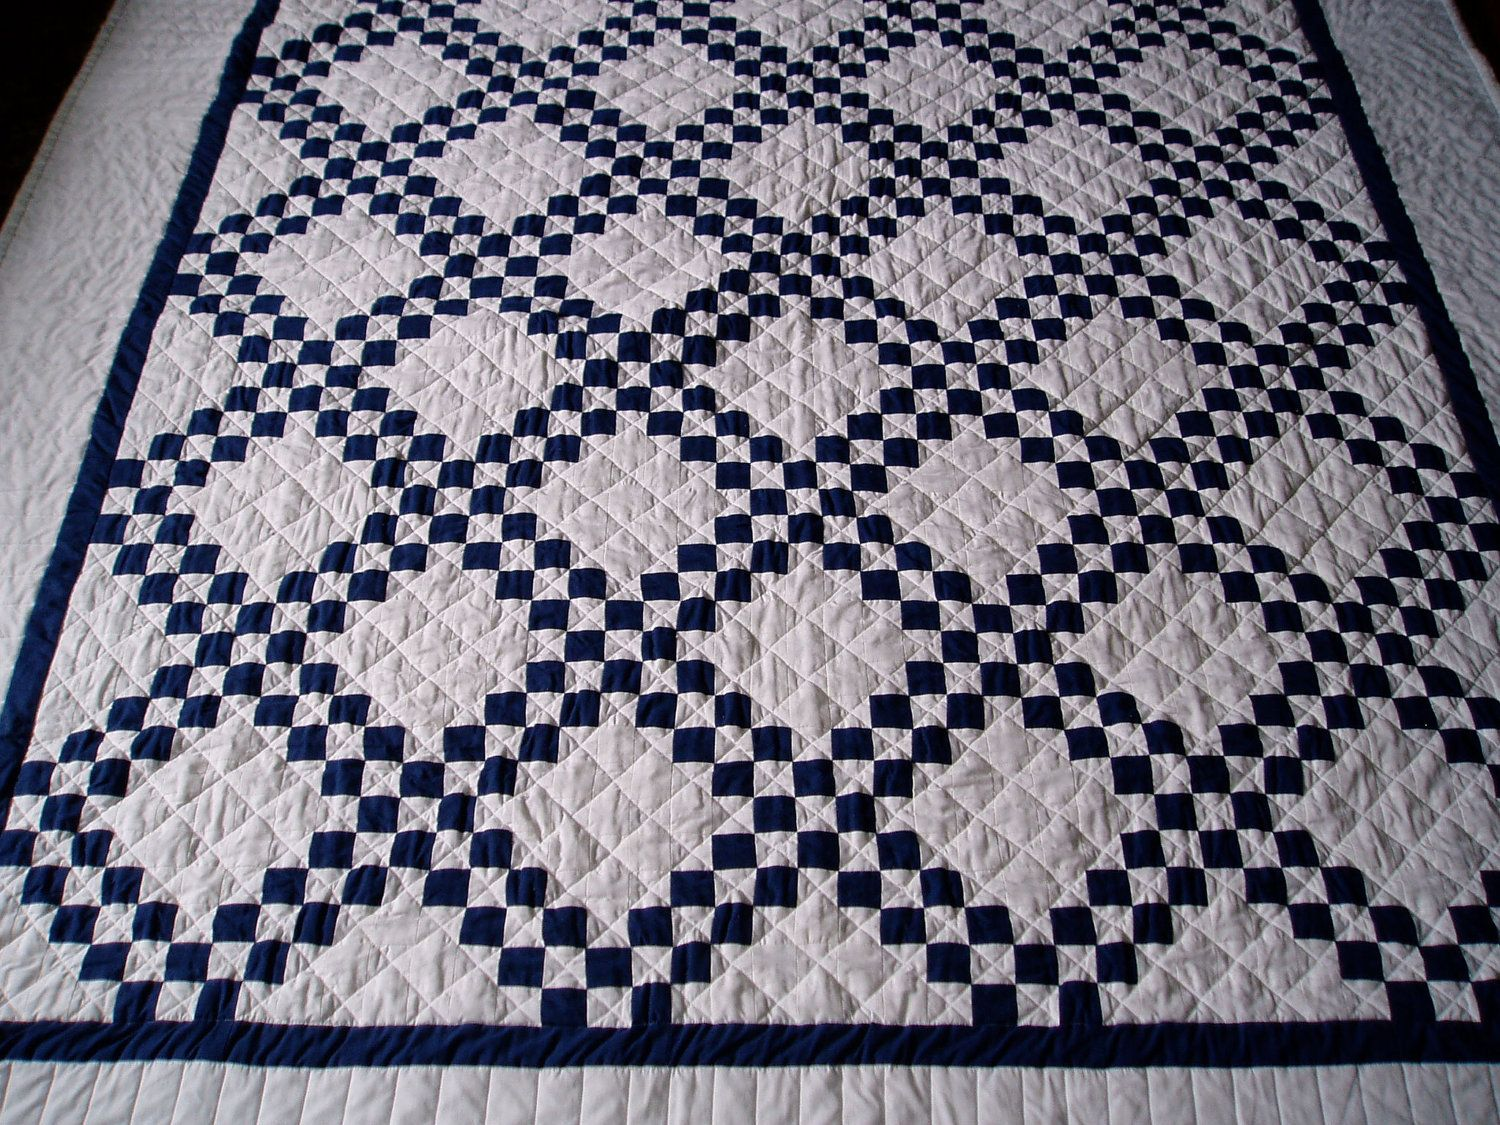 Navy Blue and White Quilt | Blue quilt patterns, Quilts, Irish